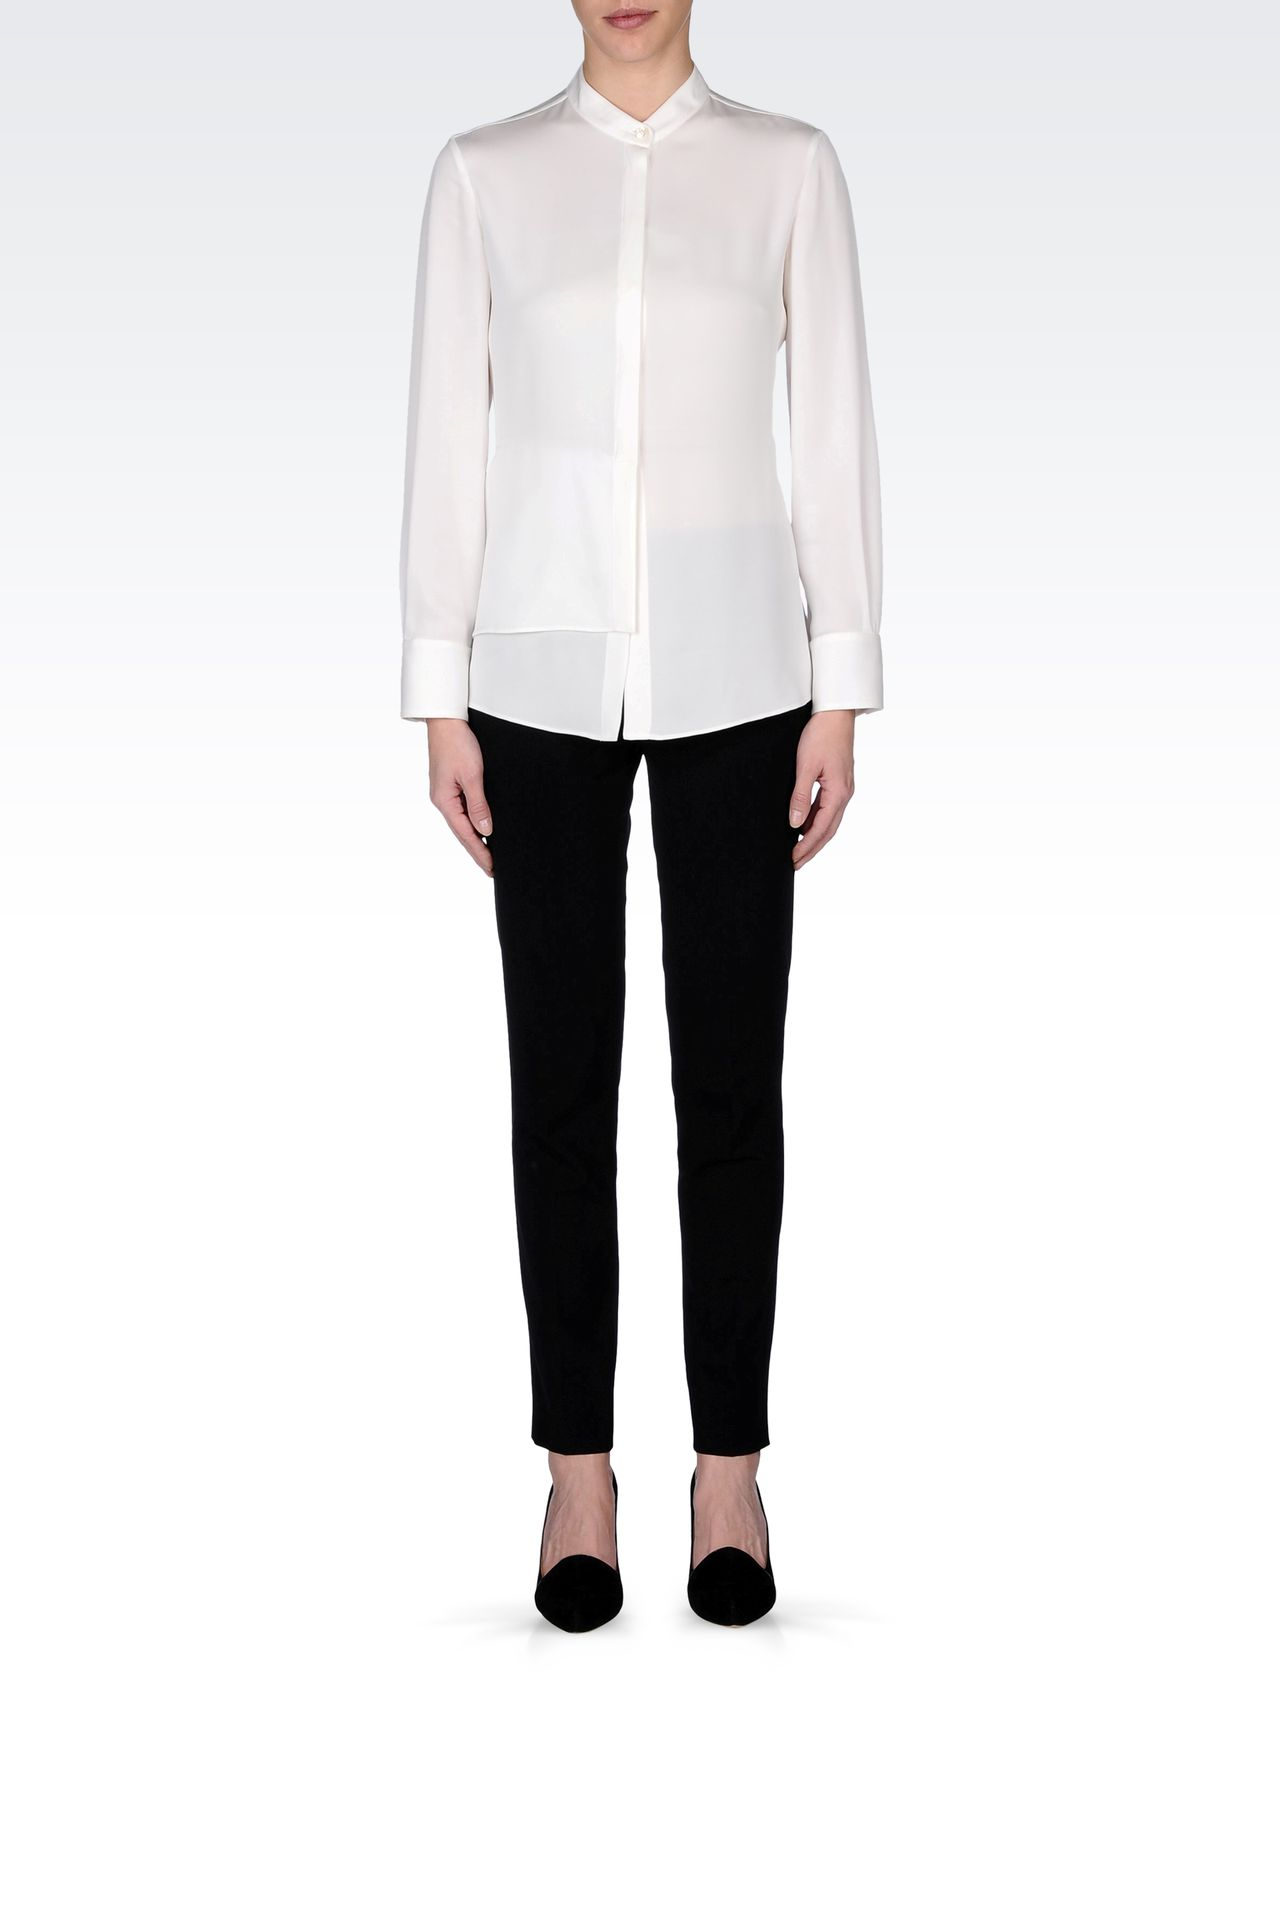 STRETCH CADY SHIRT WITH MANDARIN COLLAR : Long sleeve shirts Women by Armani - 0